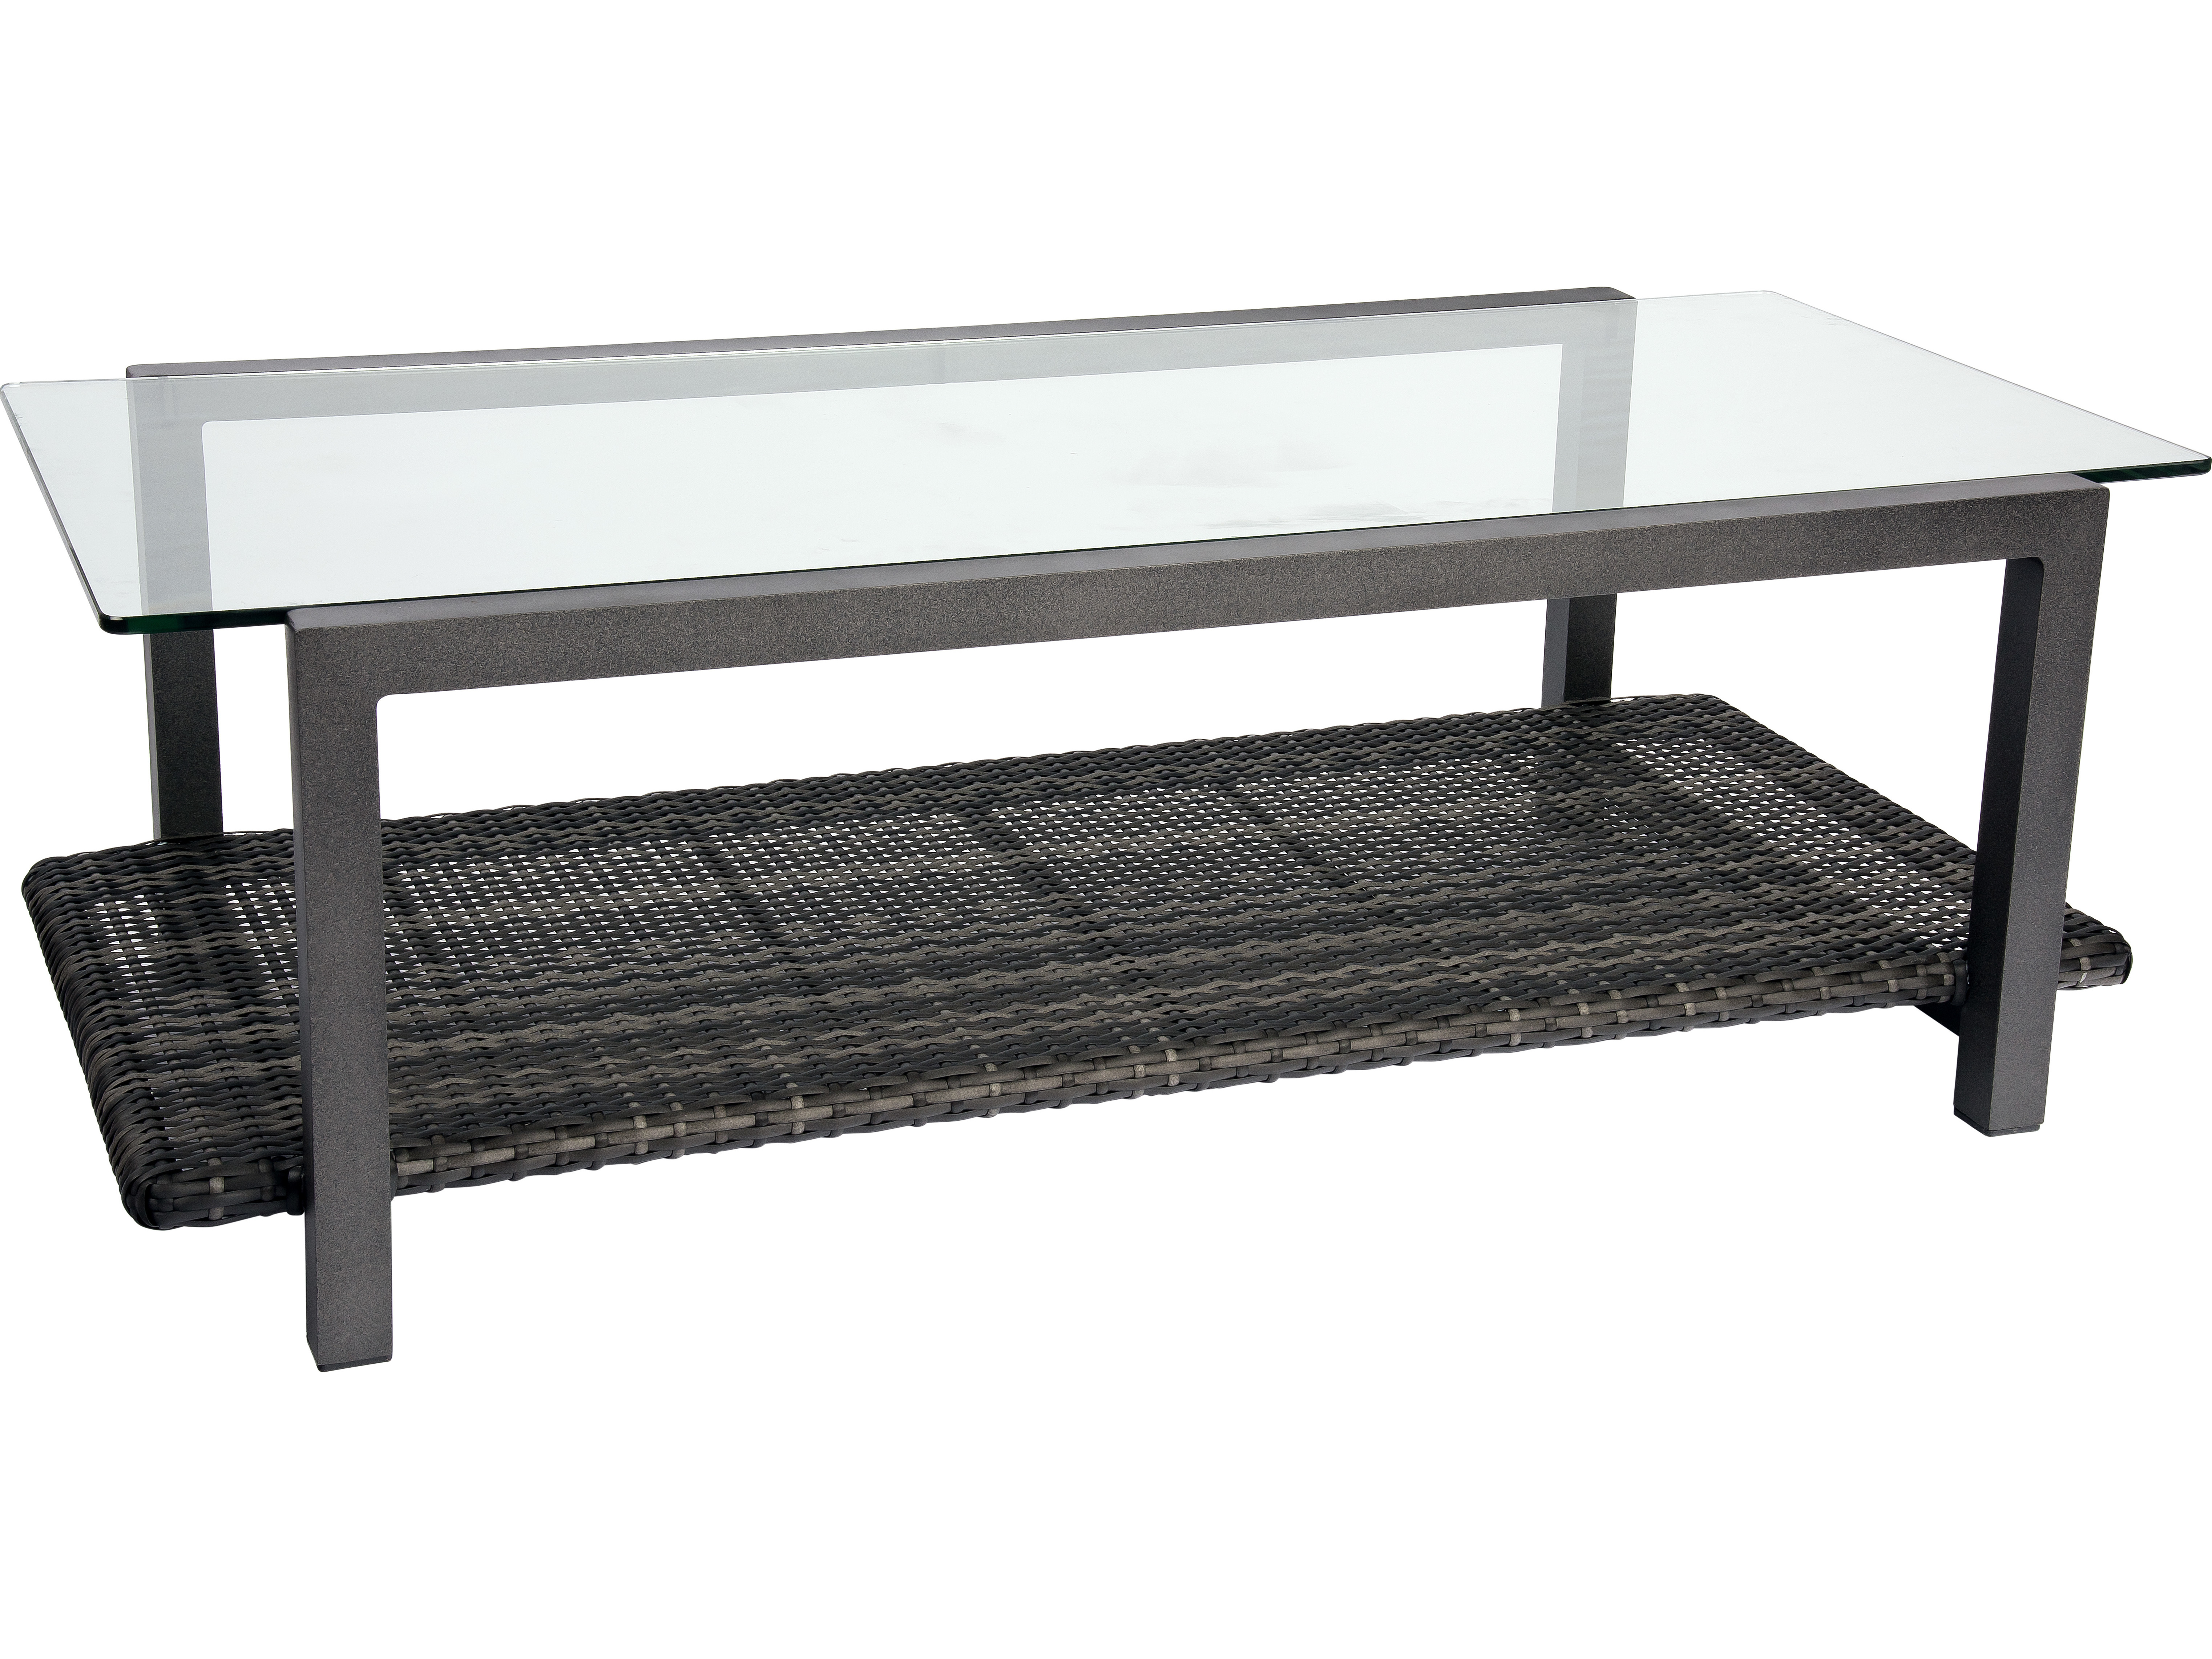 woodard canaveral wicker 48 x 24 rectangular coffee table with glass top s508211. Black Bedroom Furniture Sets. Home Design Ideas